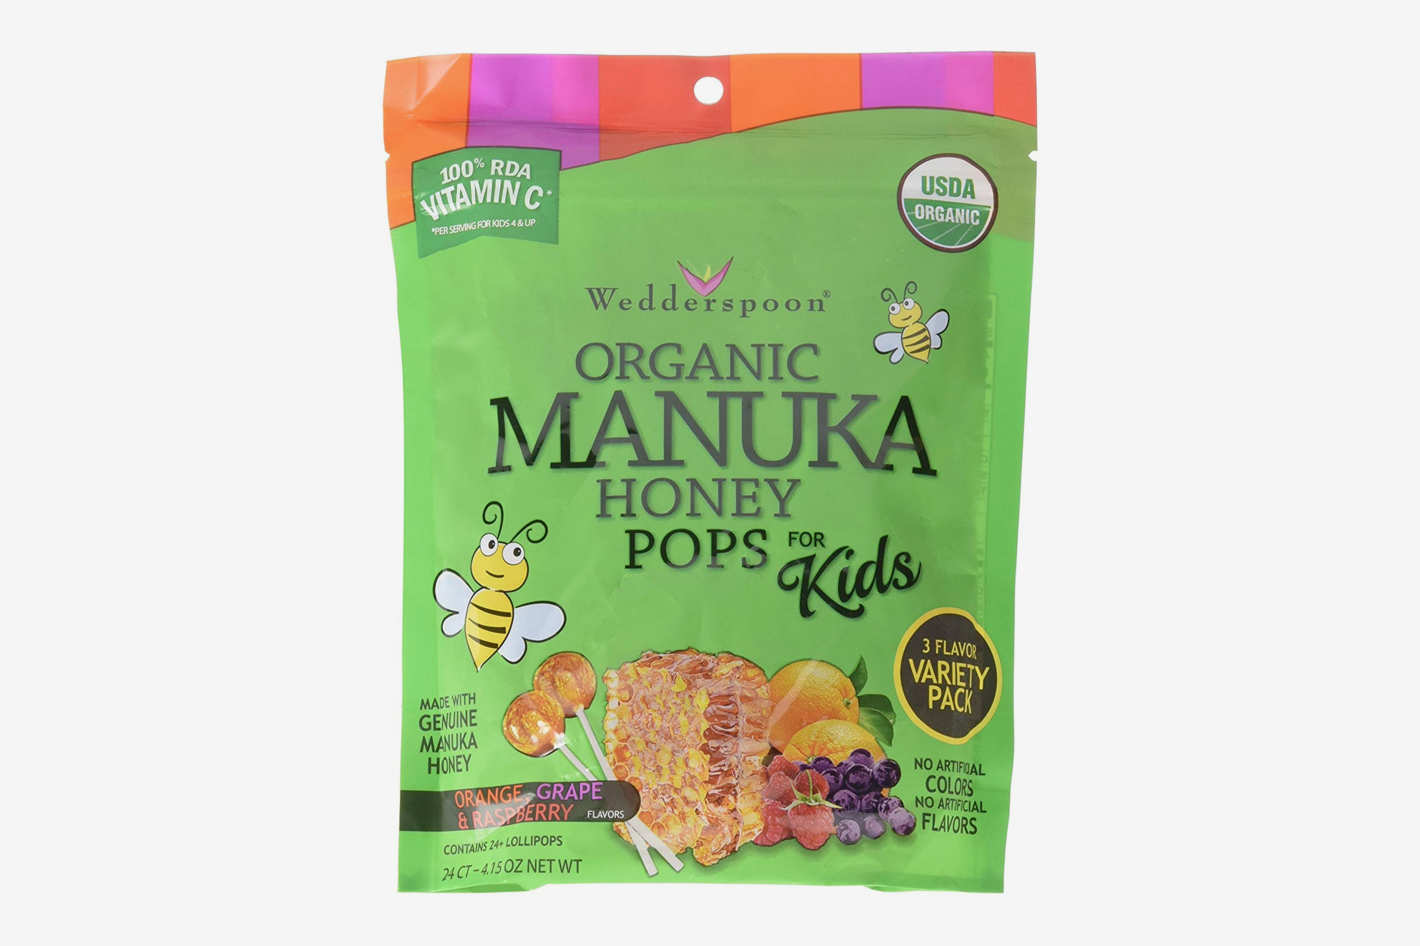 Wedderspoon Organic Manuka Honey Pops for Kids